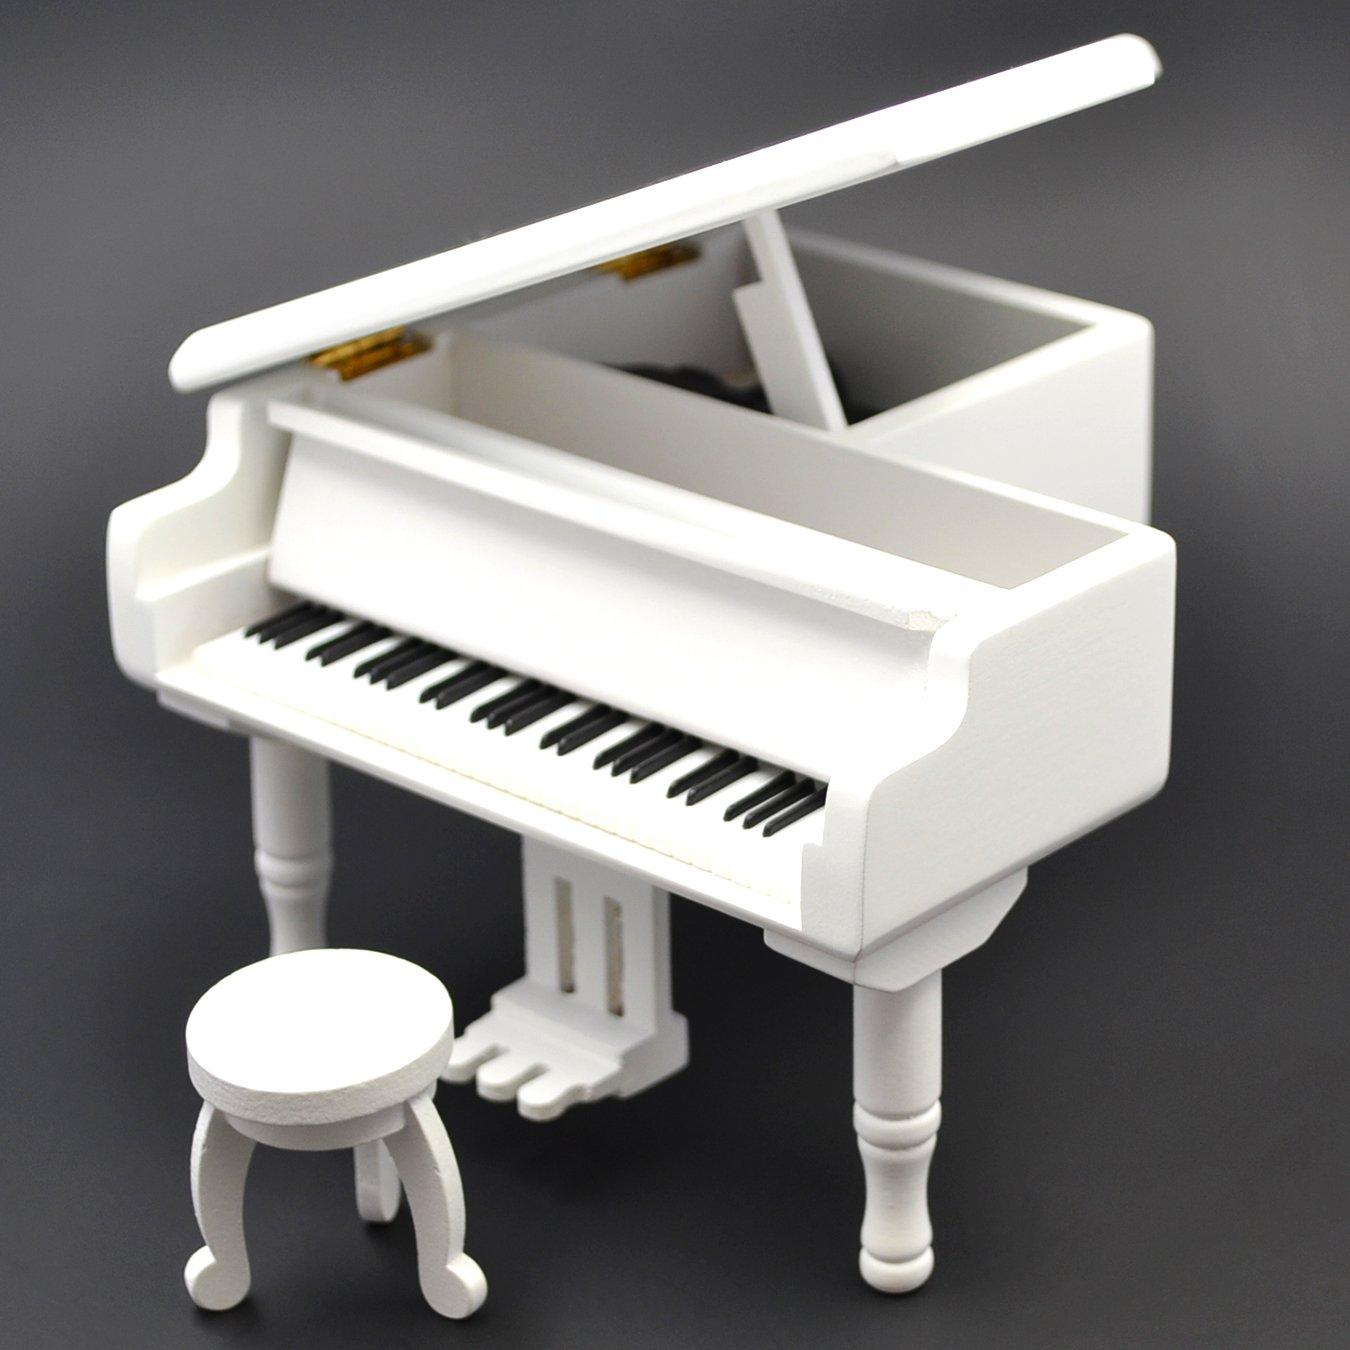 Piano Model Music Box for Music lover Christmas gift (White-Piano)